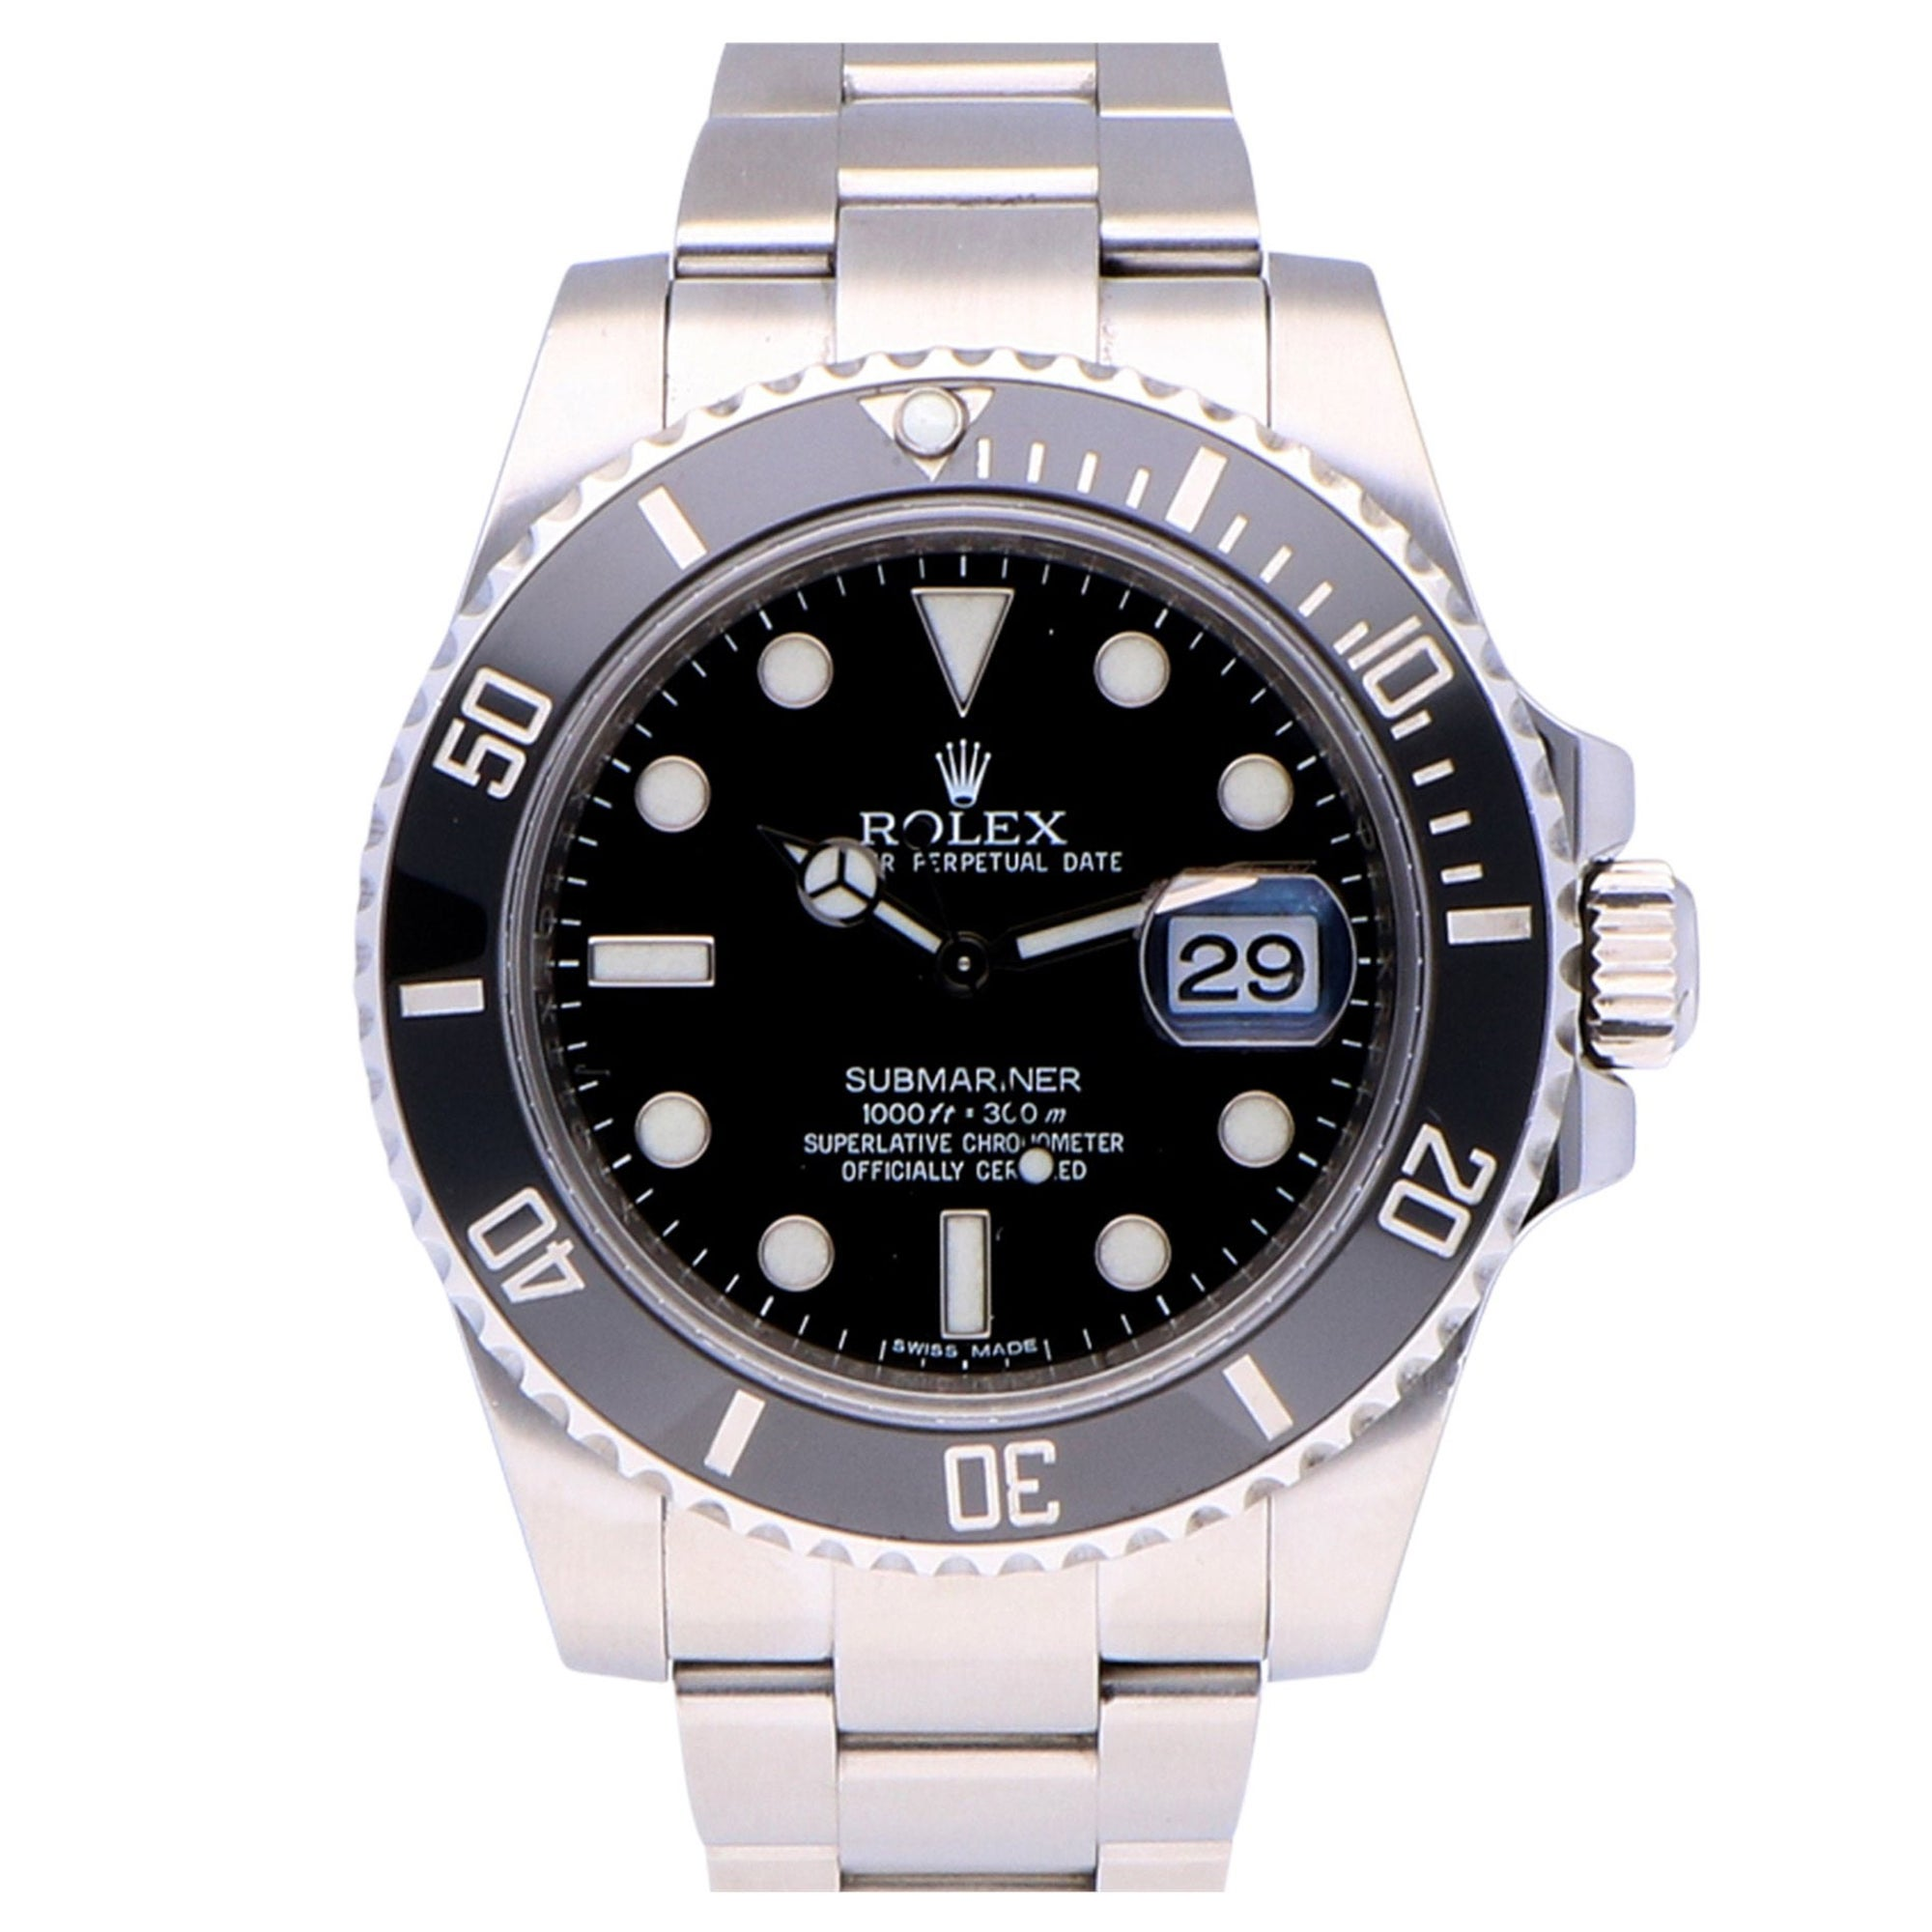 Pre-Owned Rolex Submariner Date Stainless Steel 116610ln Watch